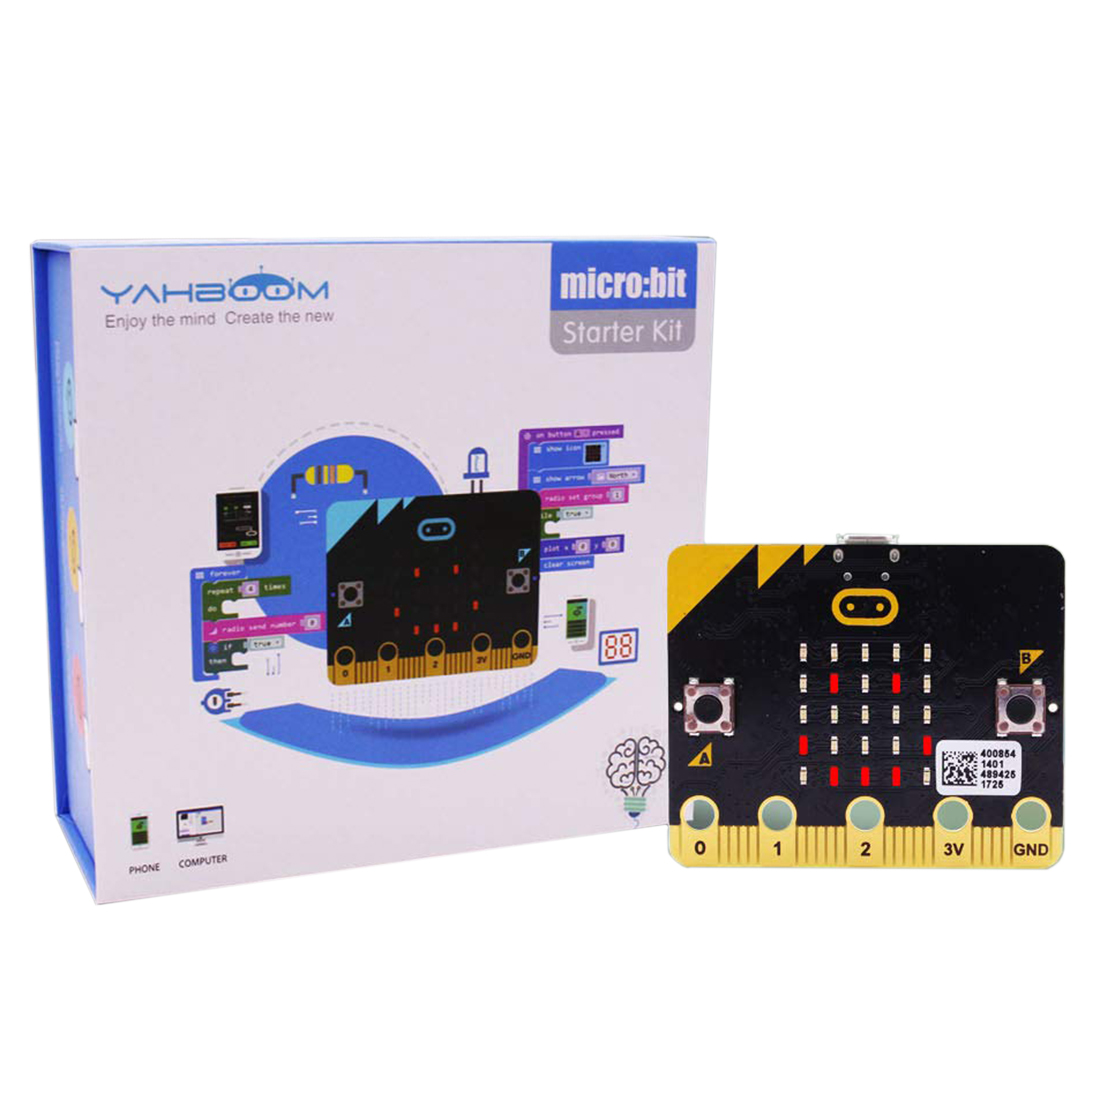 Micro:Bit Kit Starter Learning Kit Micro Bit Board Graphical Programmable STEM Toys With Guidance Manual For Children Kids Toys